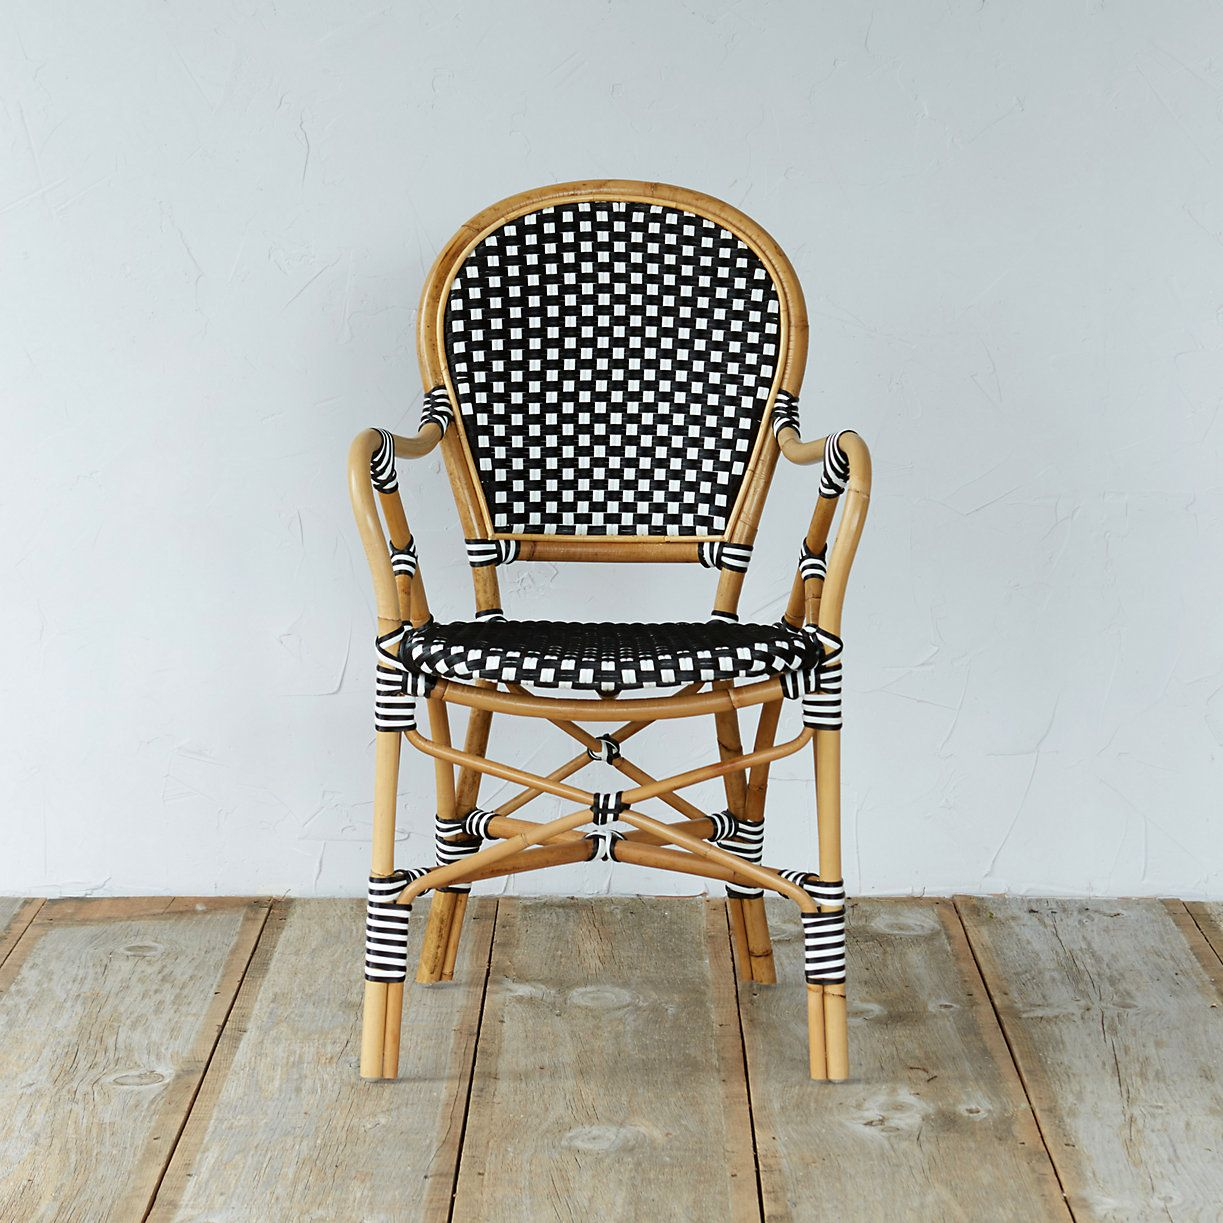 Woven in crisp black and white for graphic appeal, this